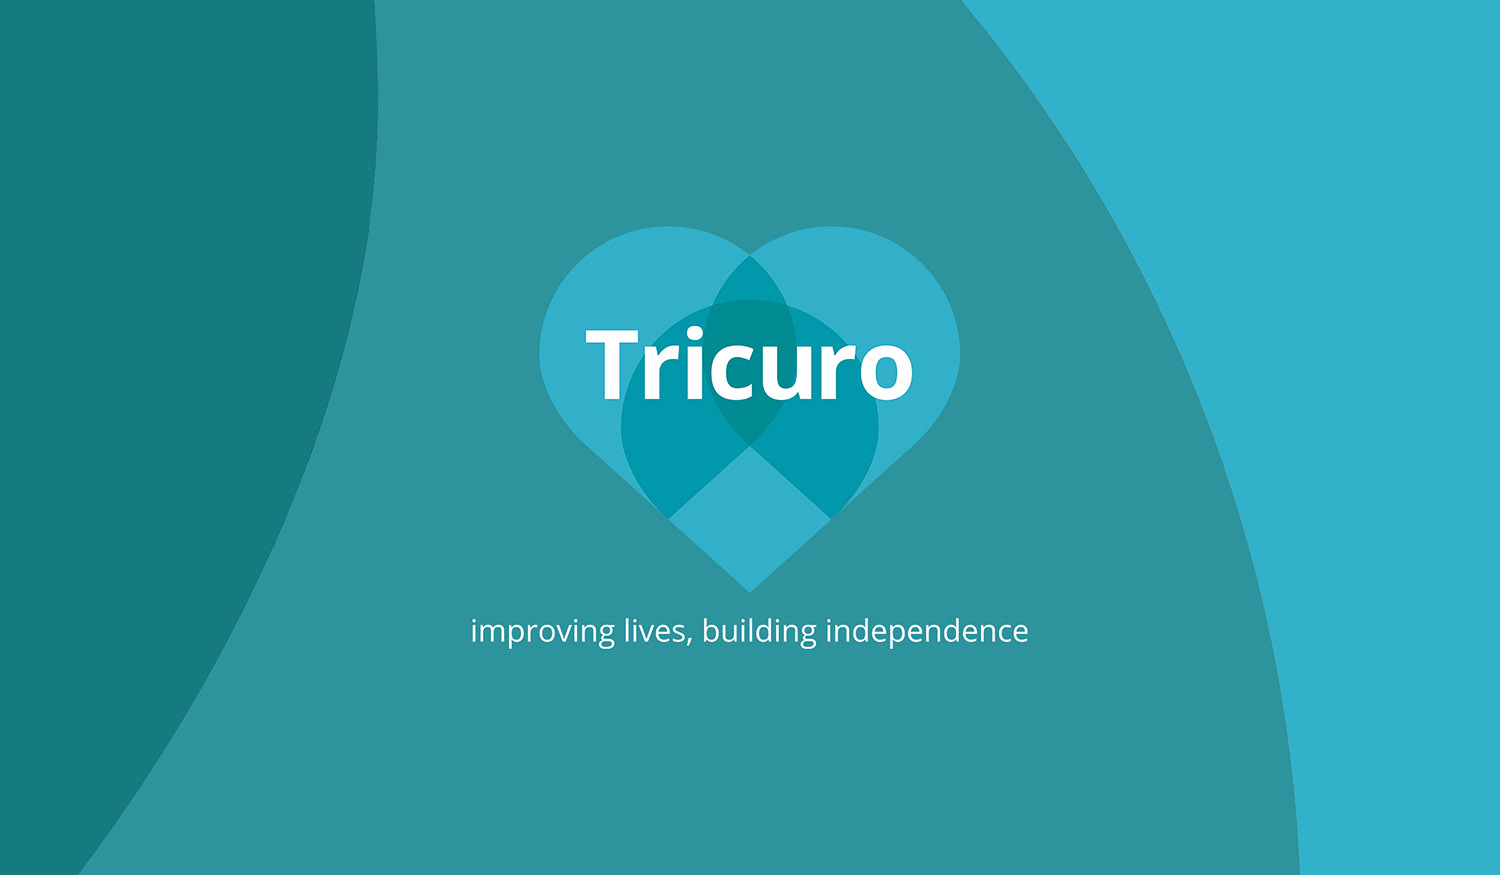 Web_Global_Group_Tricuro_Branding_Logo